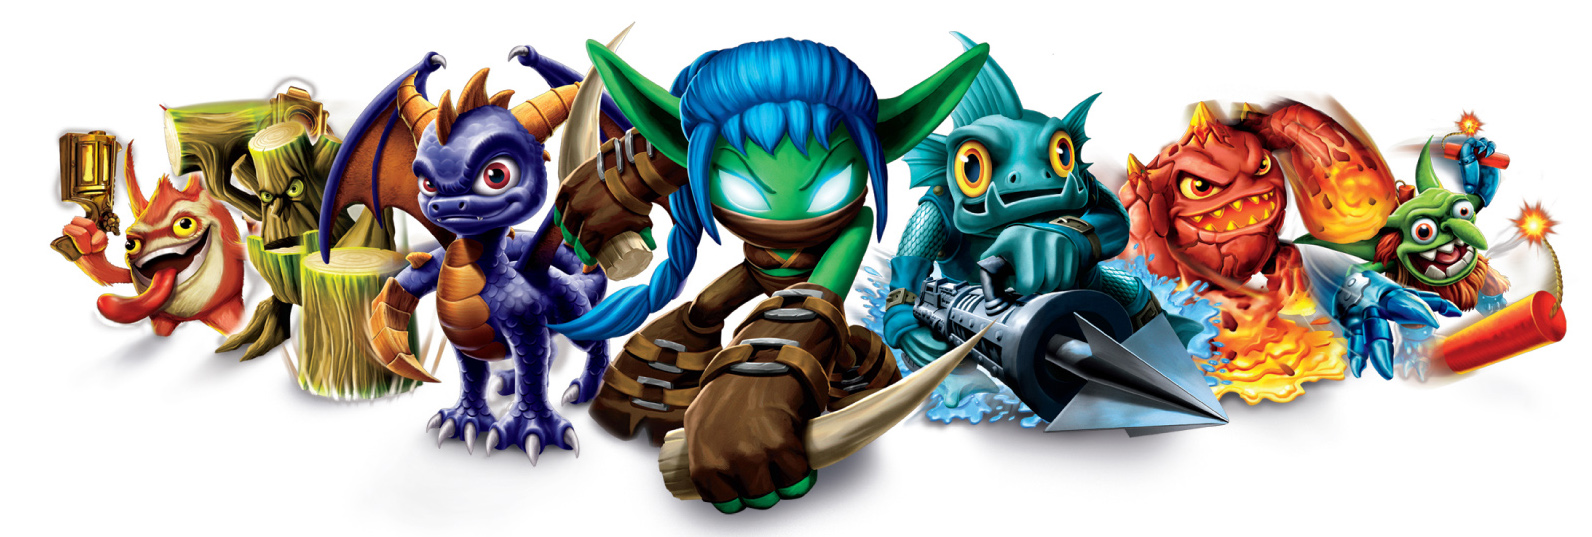 Skylanders the spyro wiki spyro sparx the legend of spyro